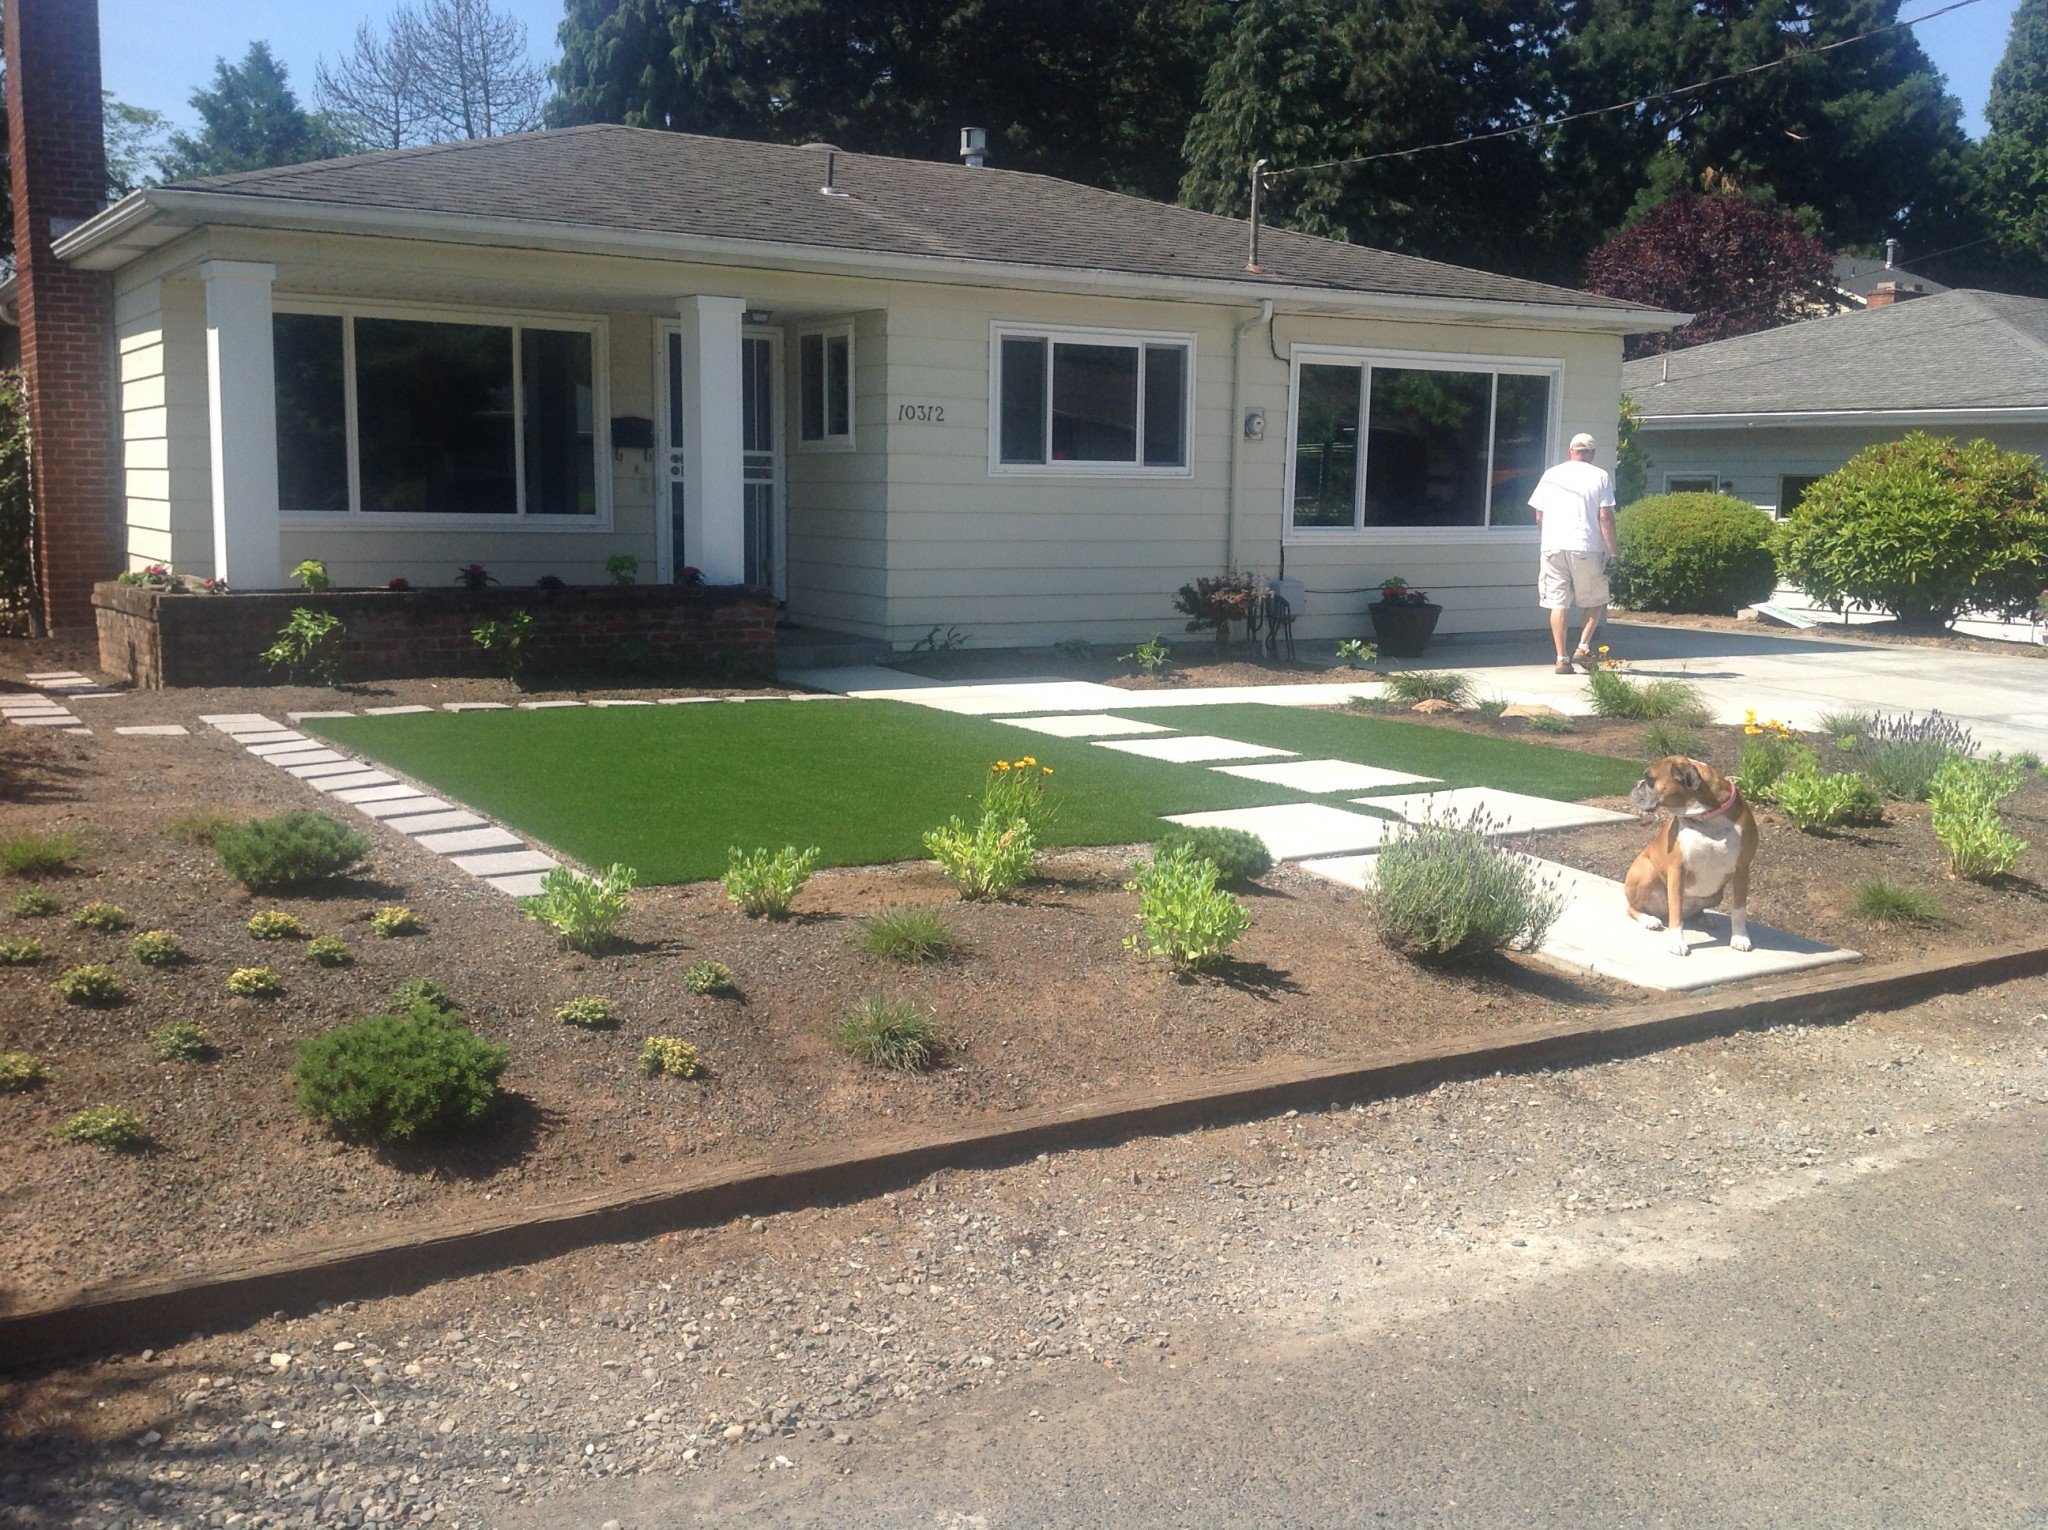 Synthetic Lawn Installed In Front Yard Landscape Design In A Day